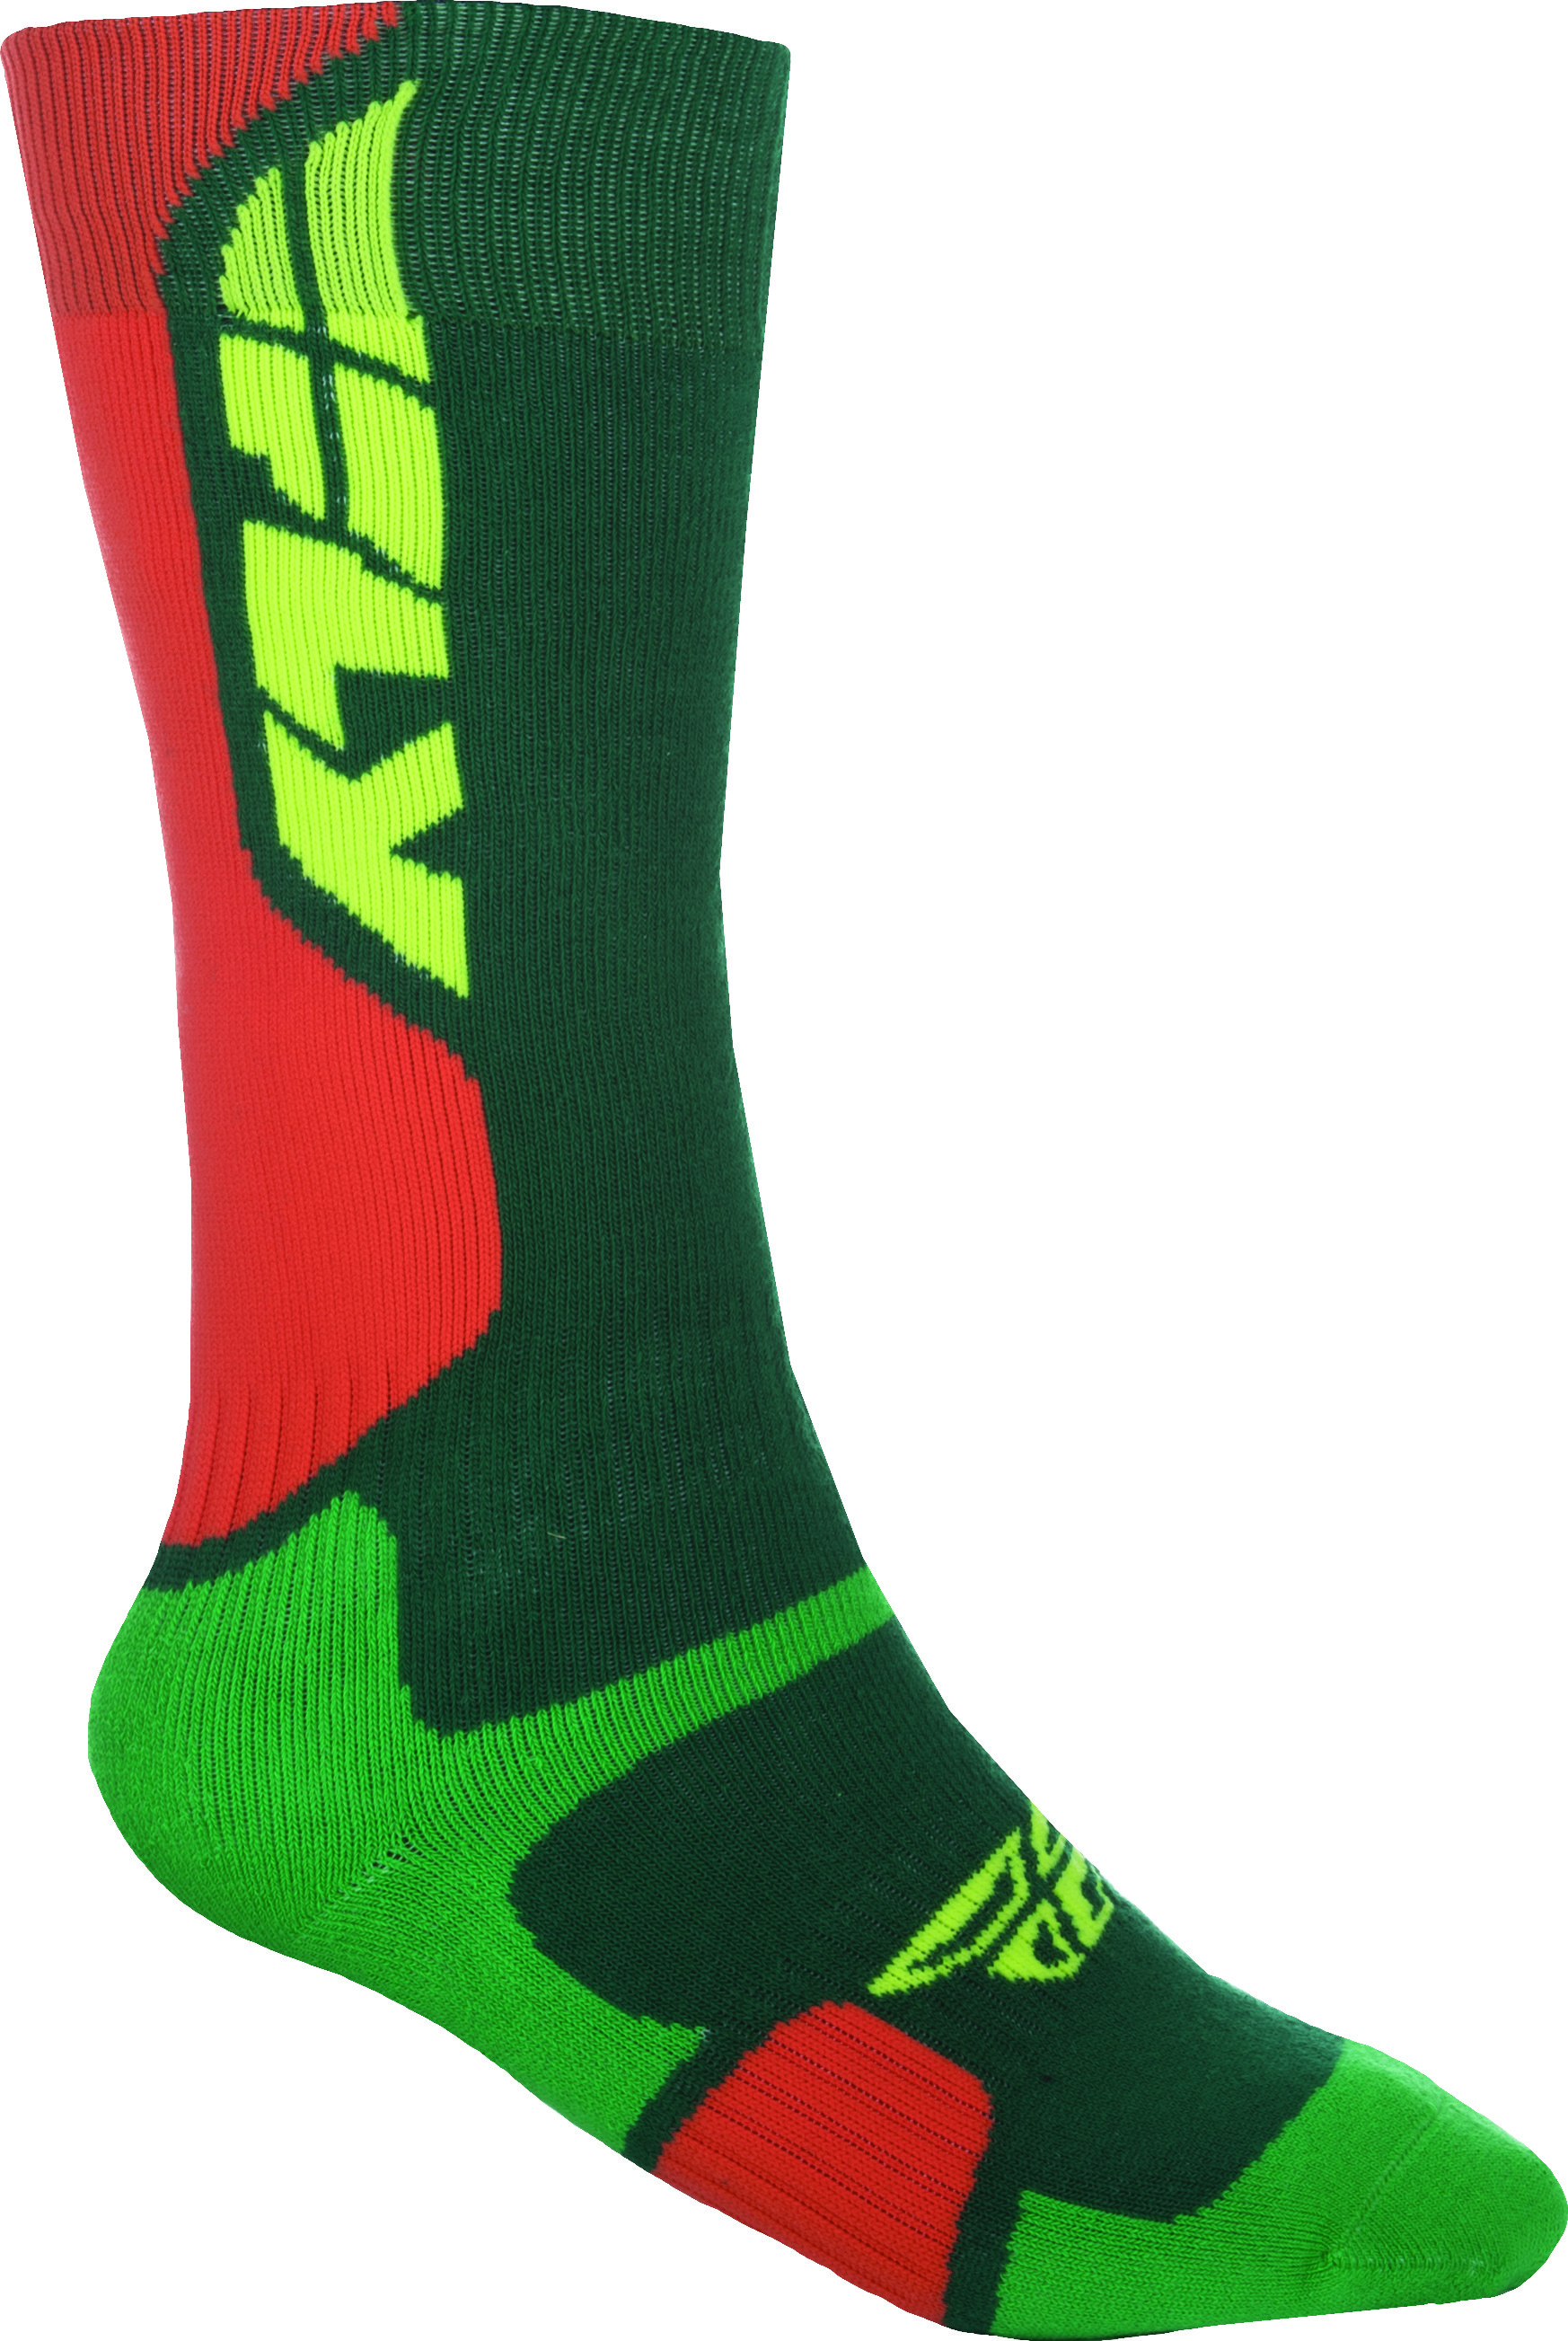 Mx Pro Sock Thick Green/Orange L/X